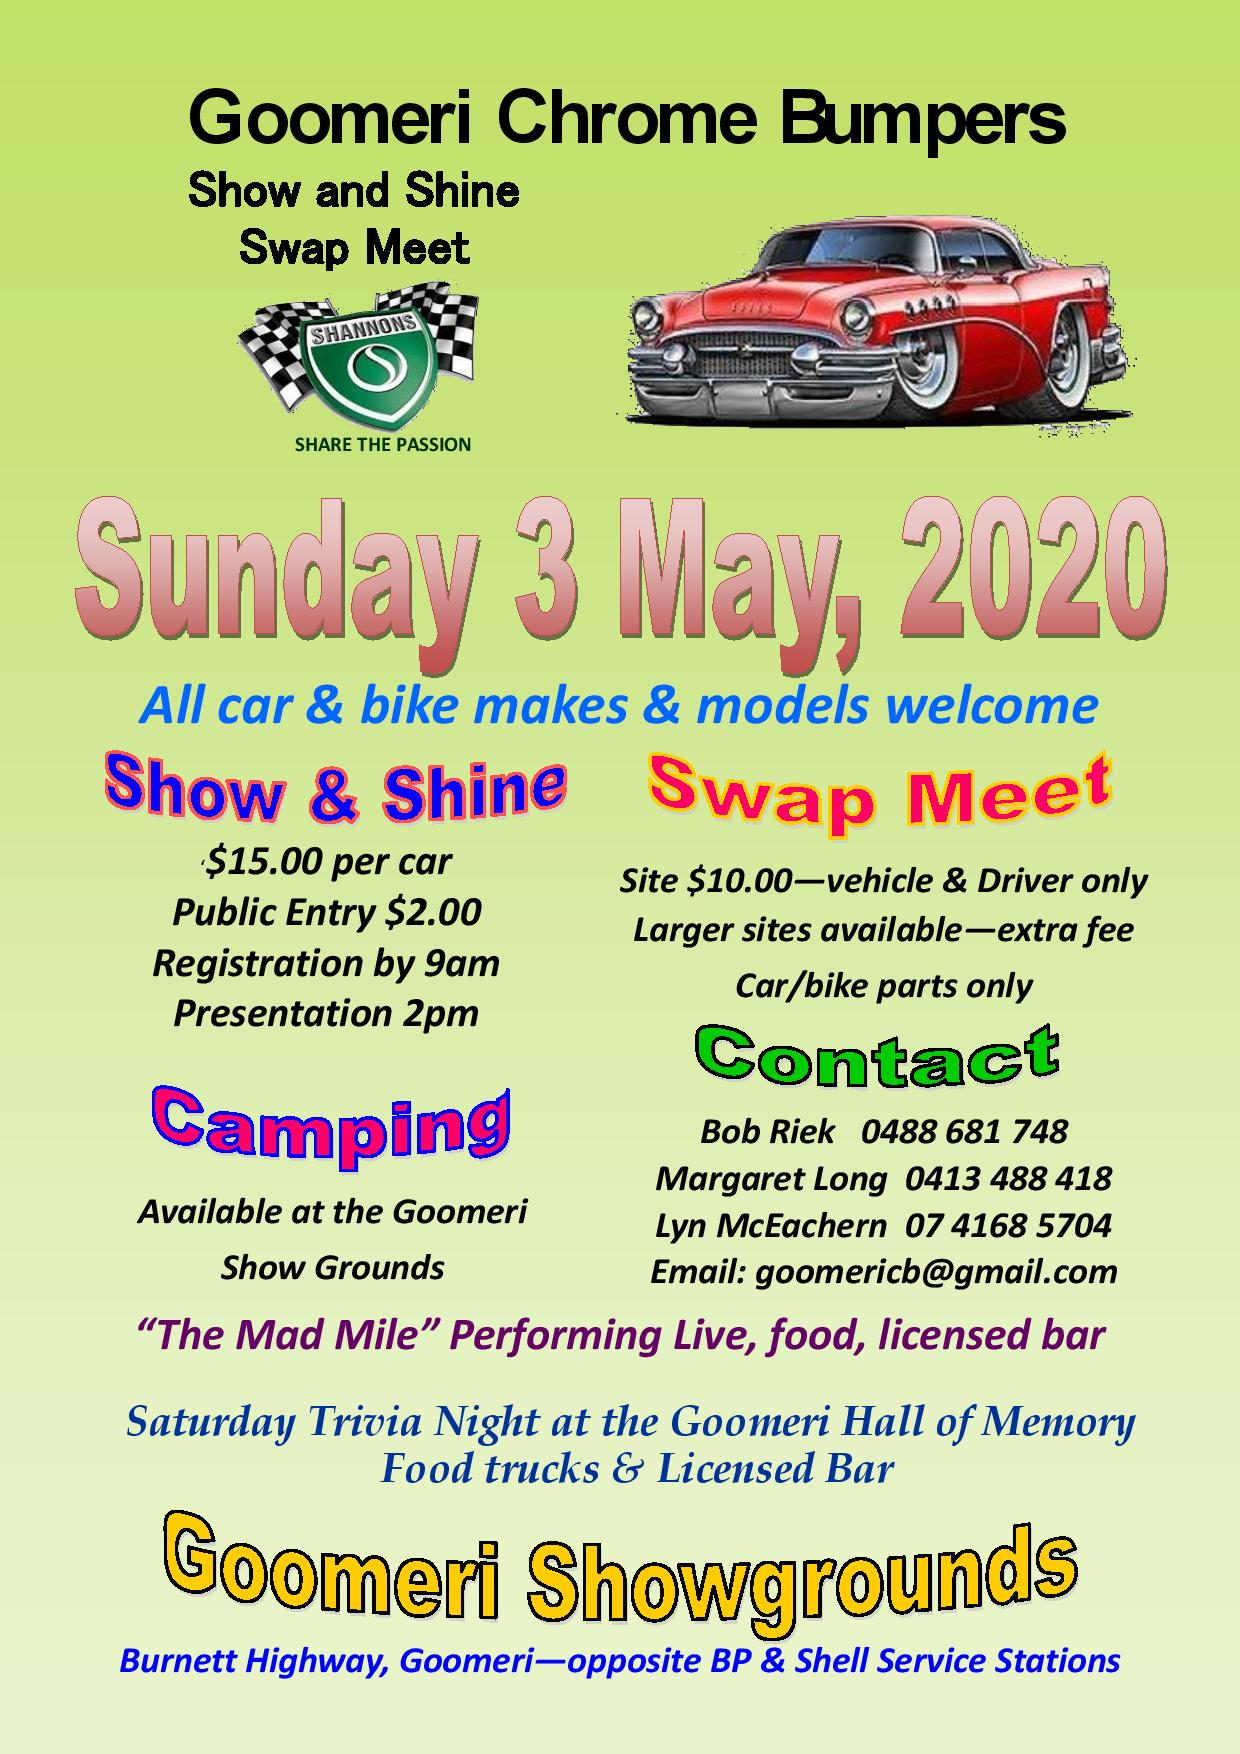 Goomeri Show & Shine Swap Meet 2020 @ Goomeri Showgrounds | Goomeri | Queensland | Australia